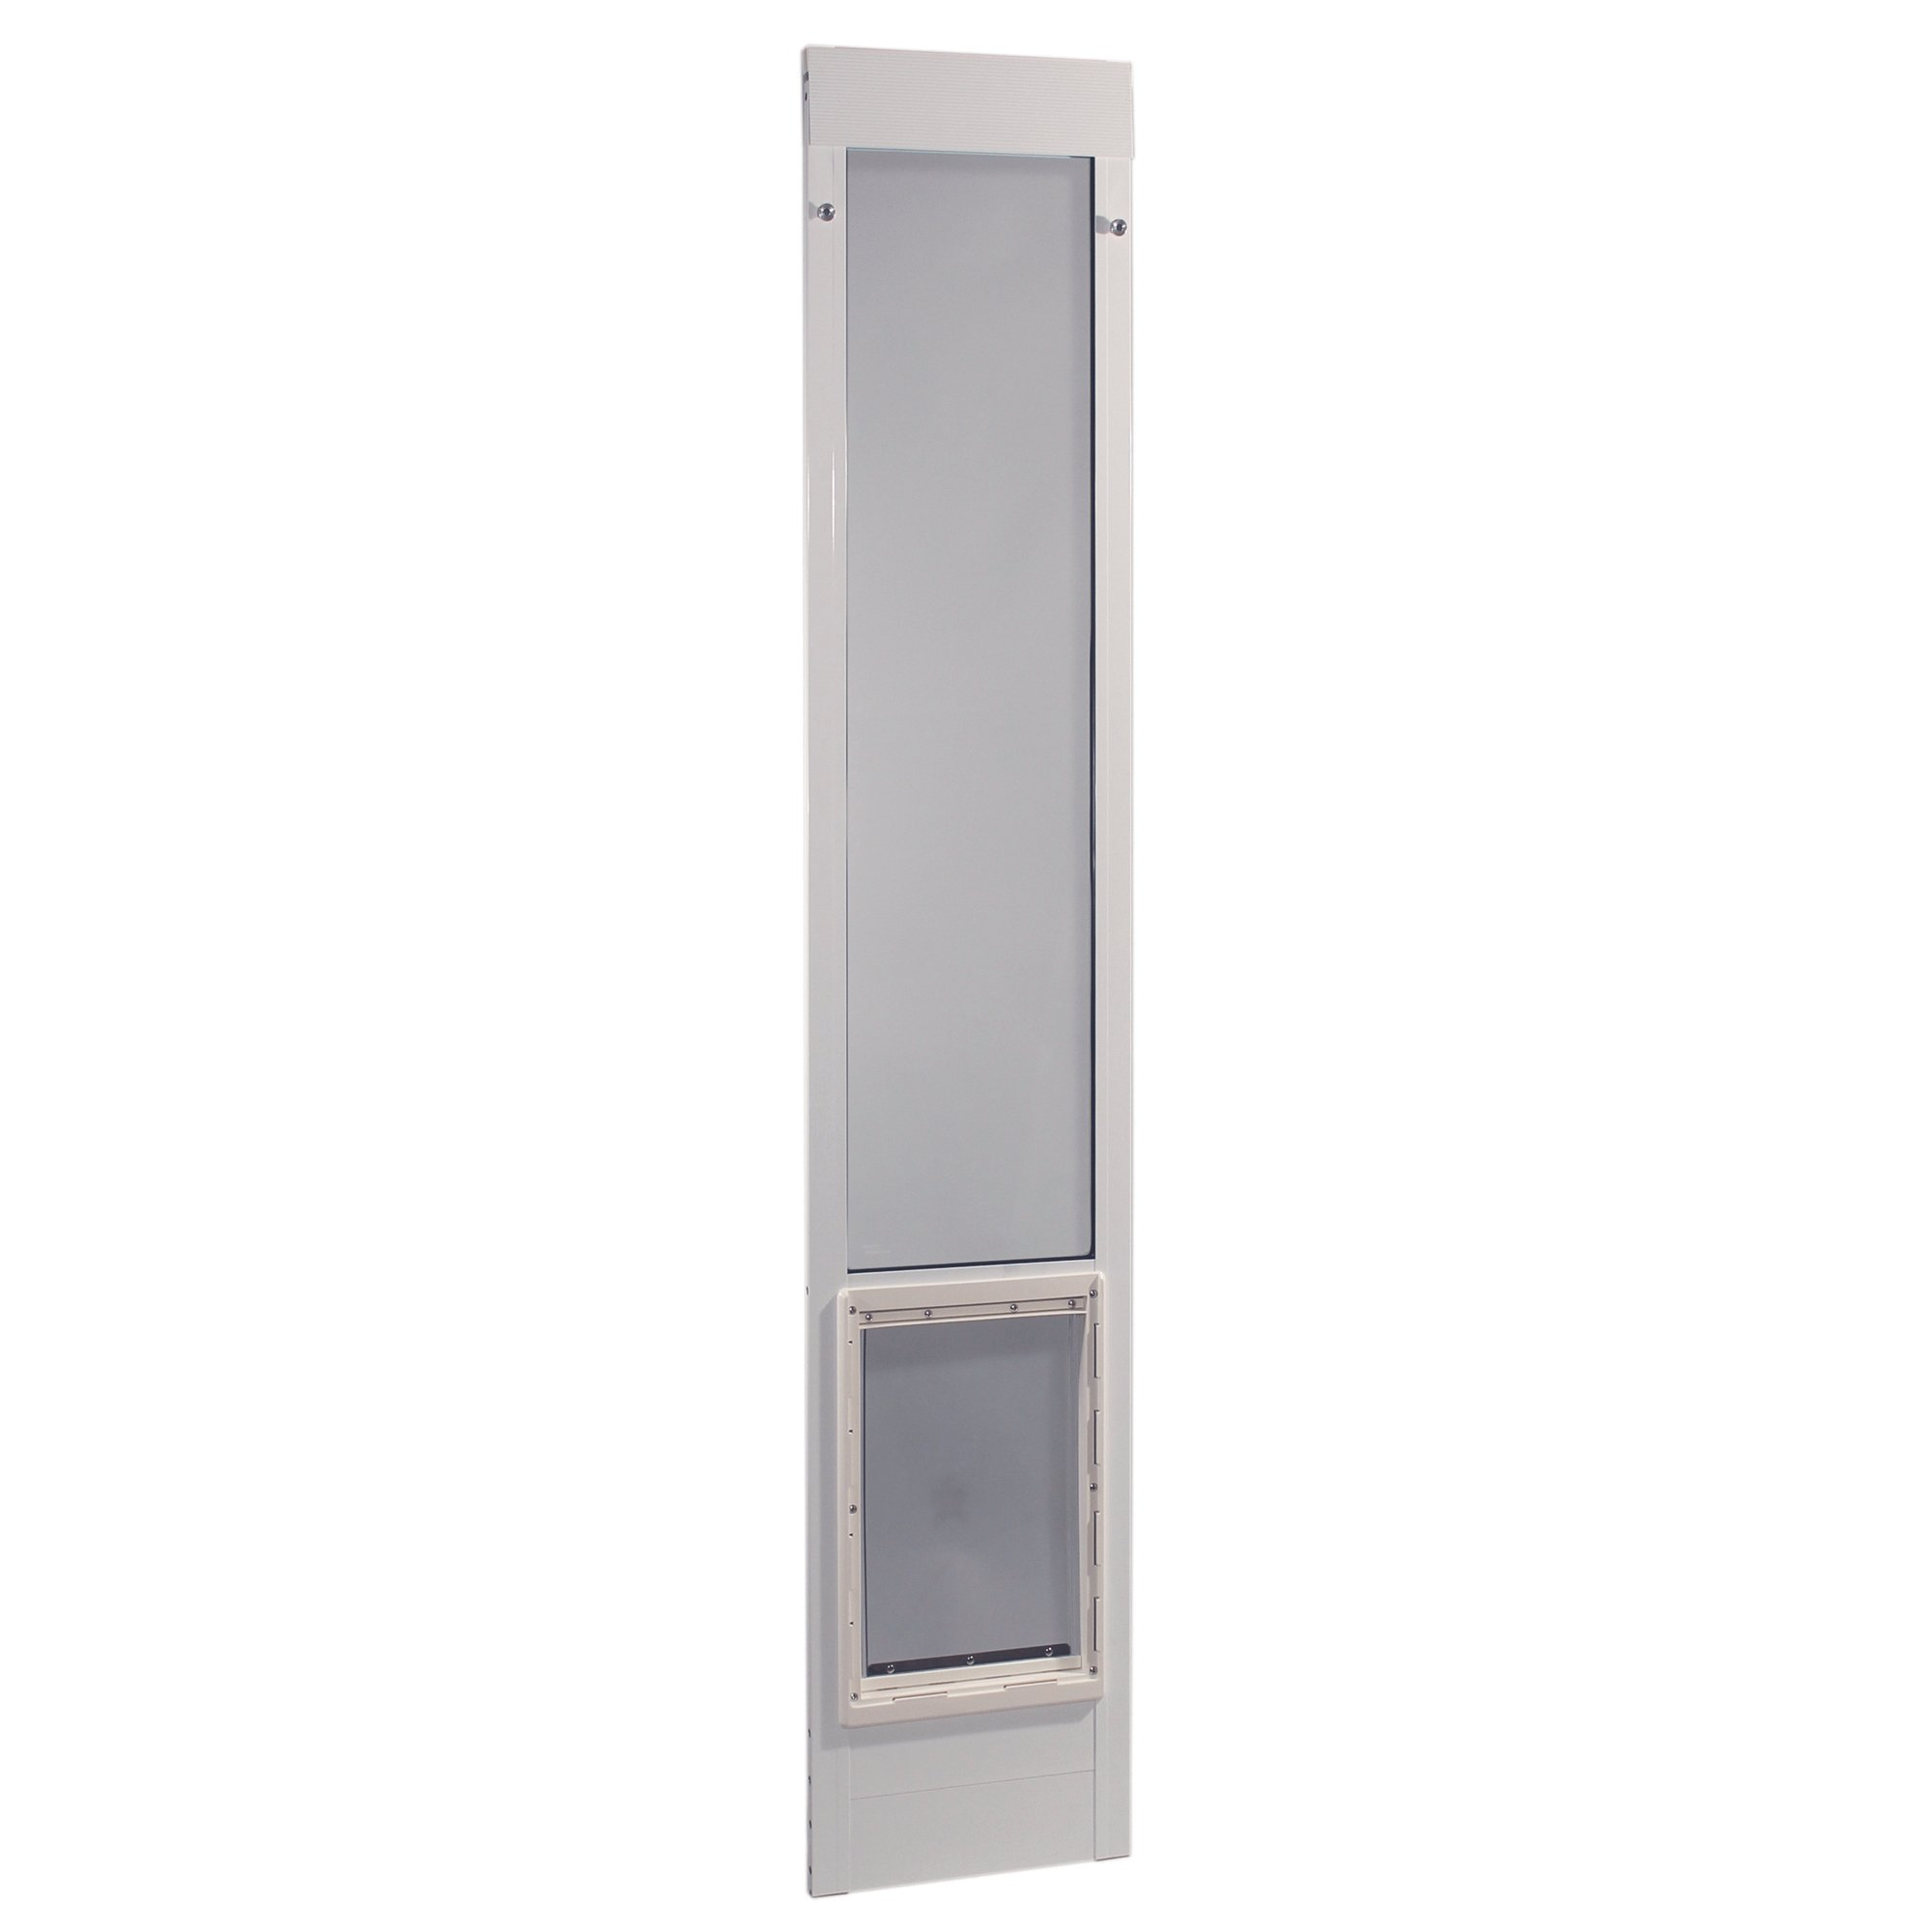 Ideal Pet Products 75PATXLW 75'' Fast Fit Aluminum Pet Patio Door, X-Large/10.5'' x 15'', White by Ideal Pet Products